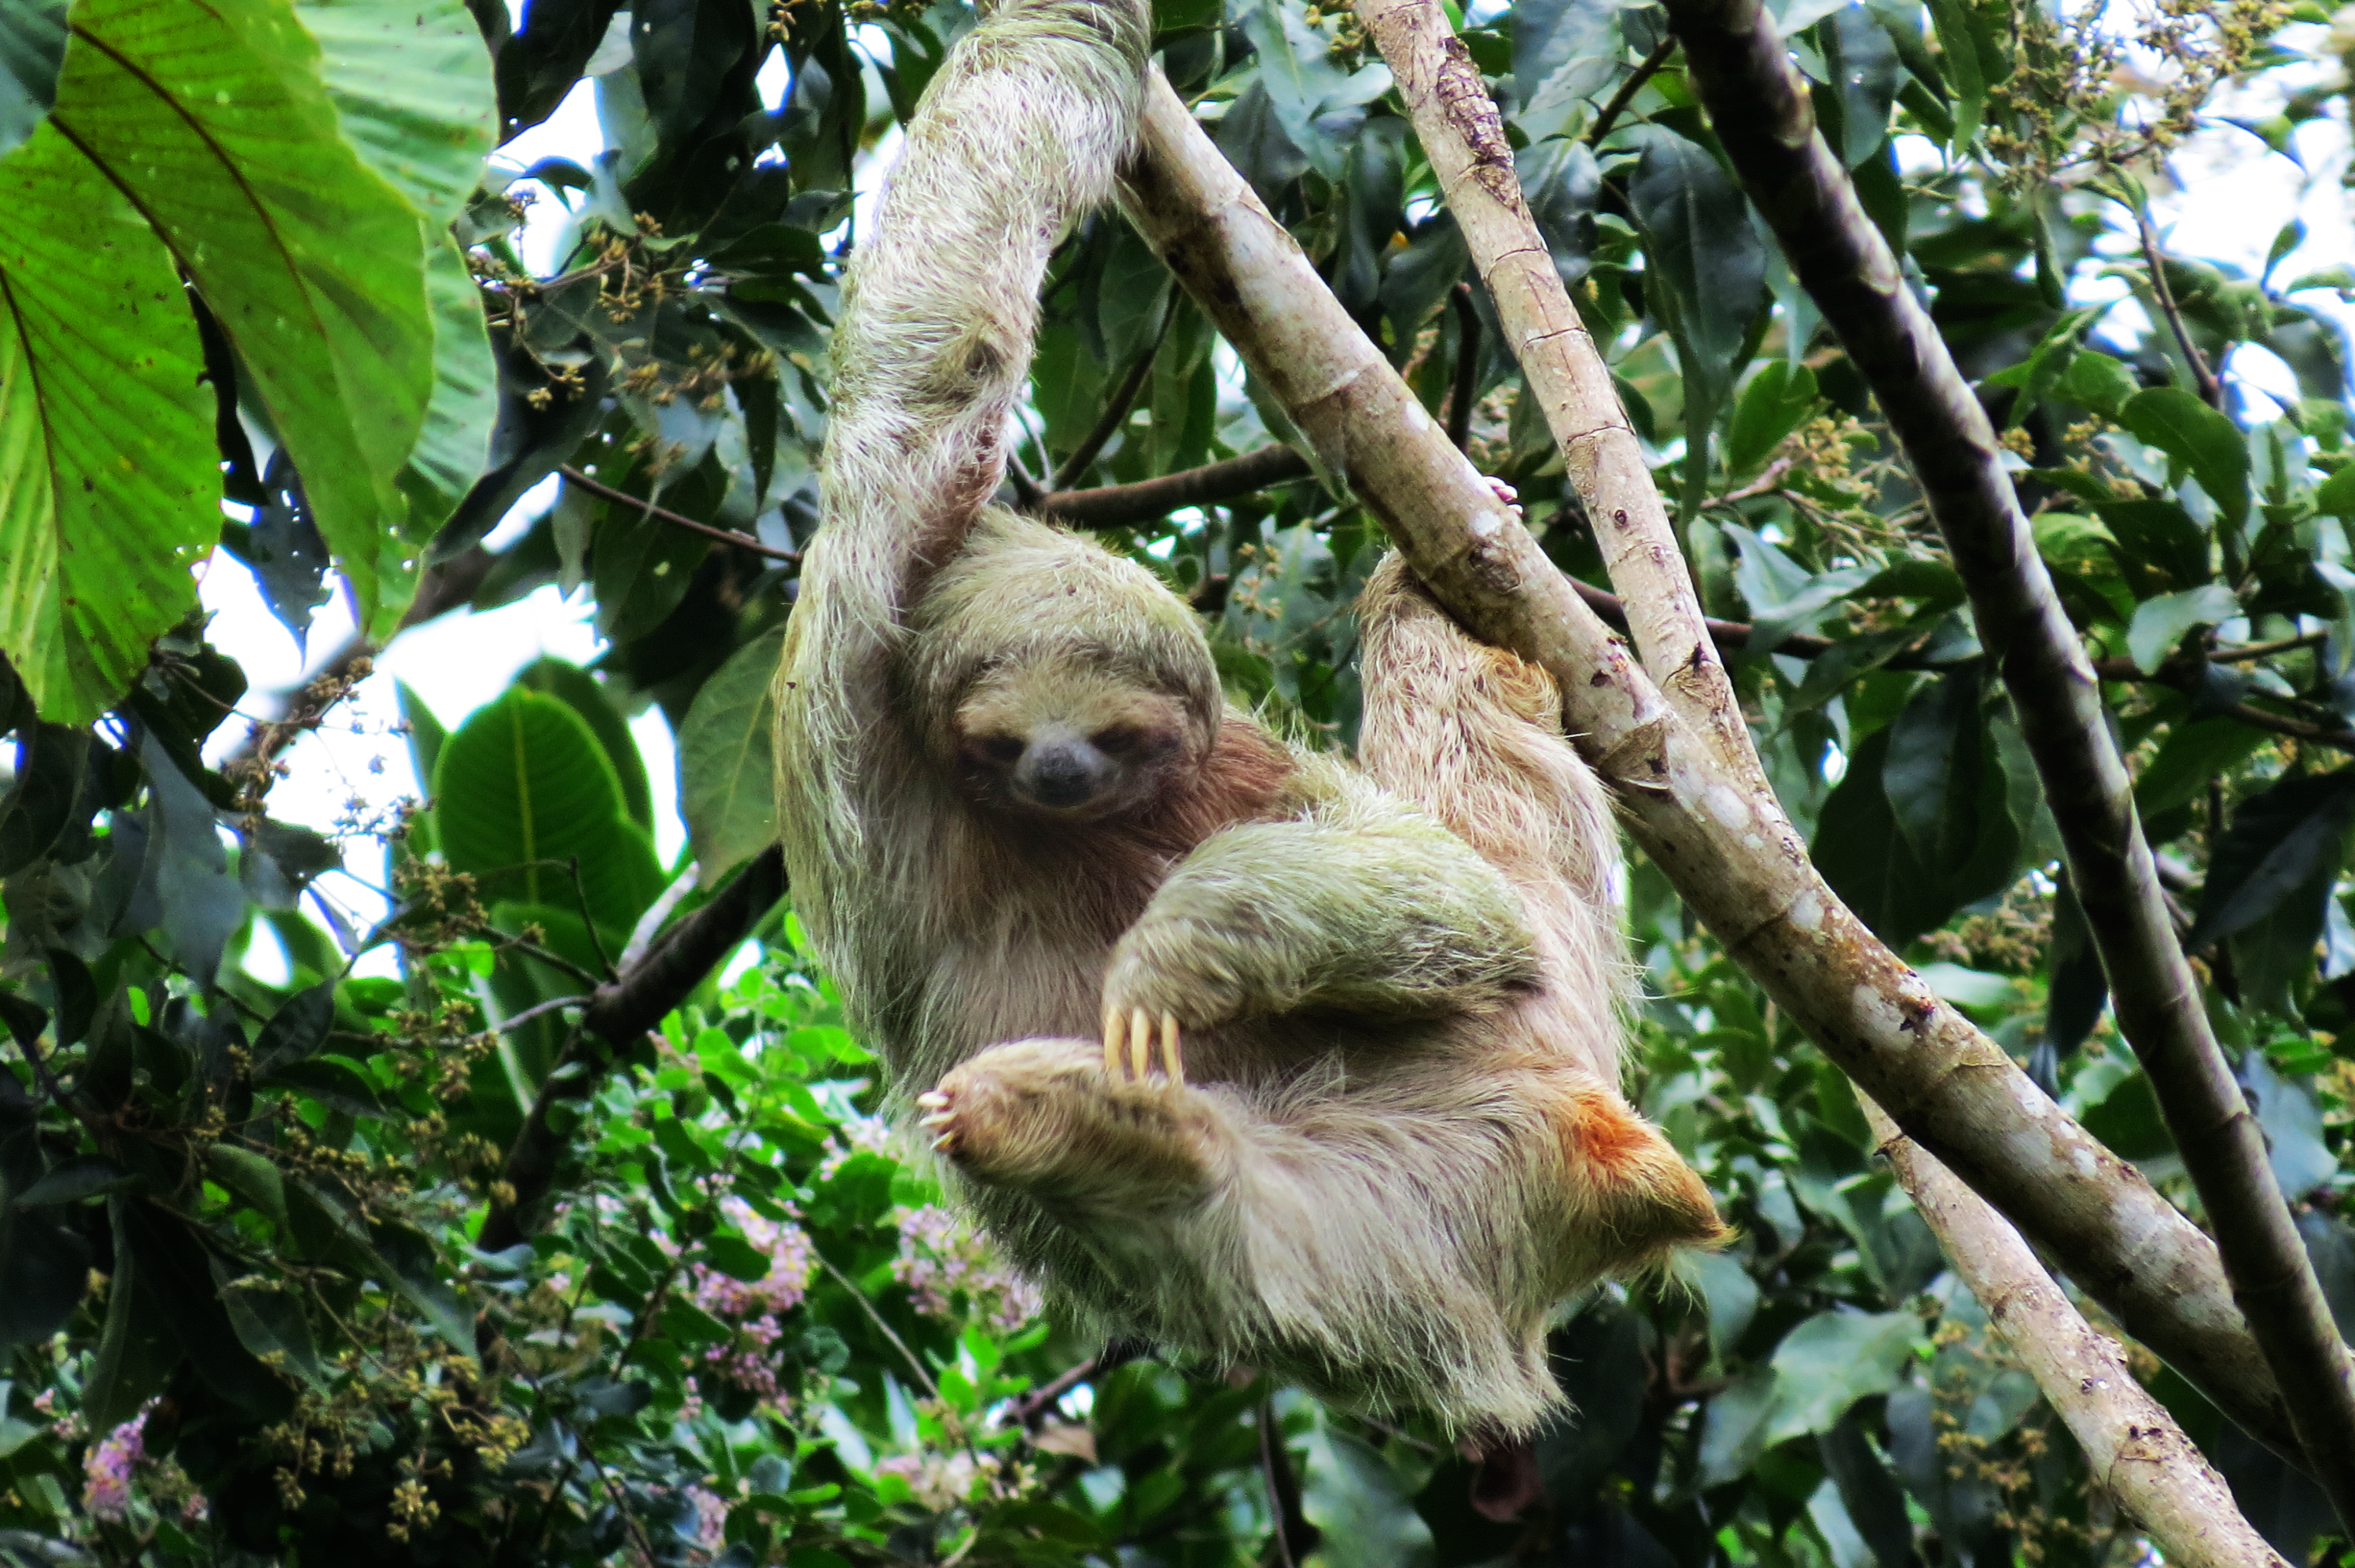 Where can I see sloths in La Fortuna?